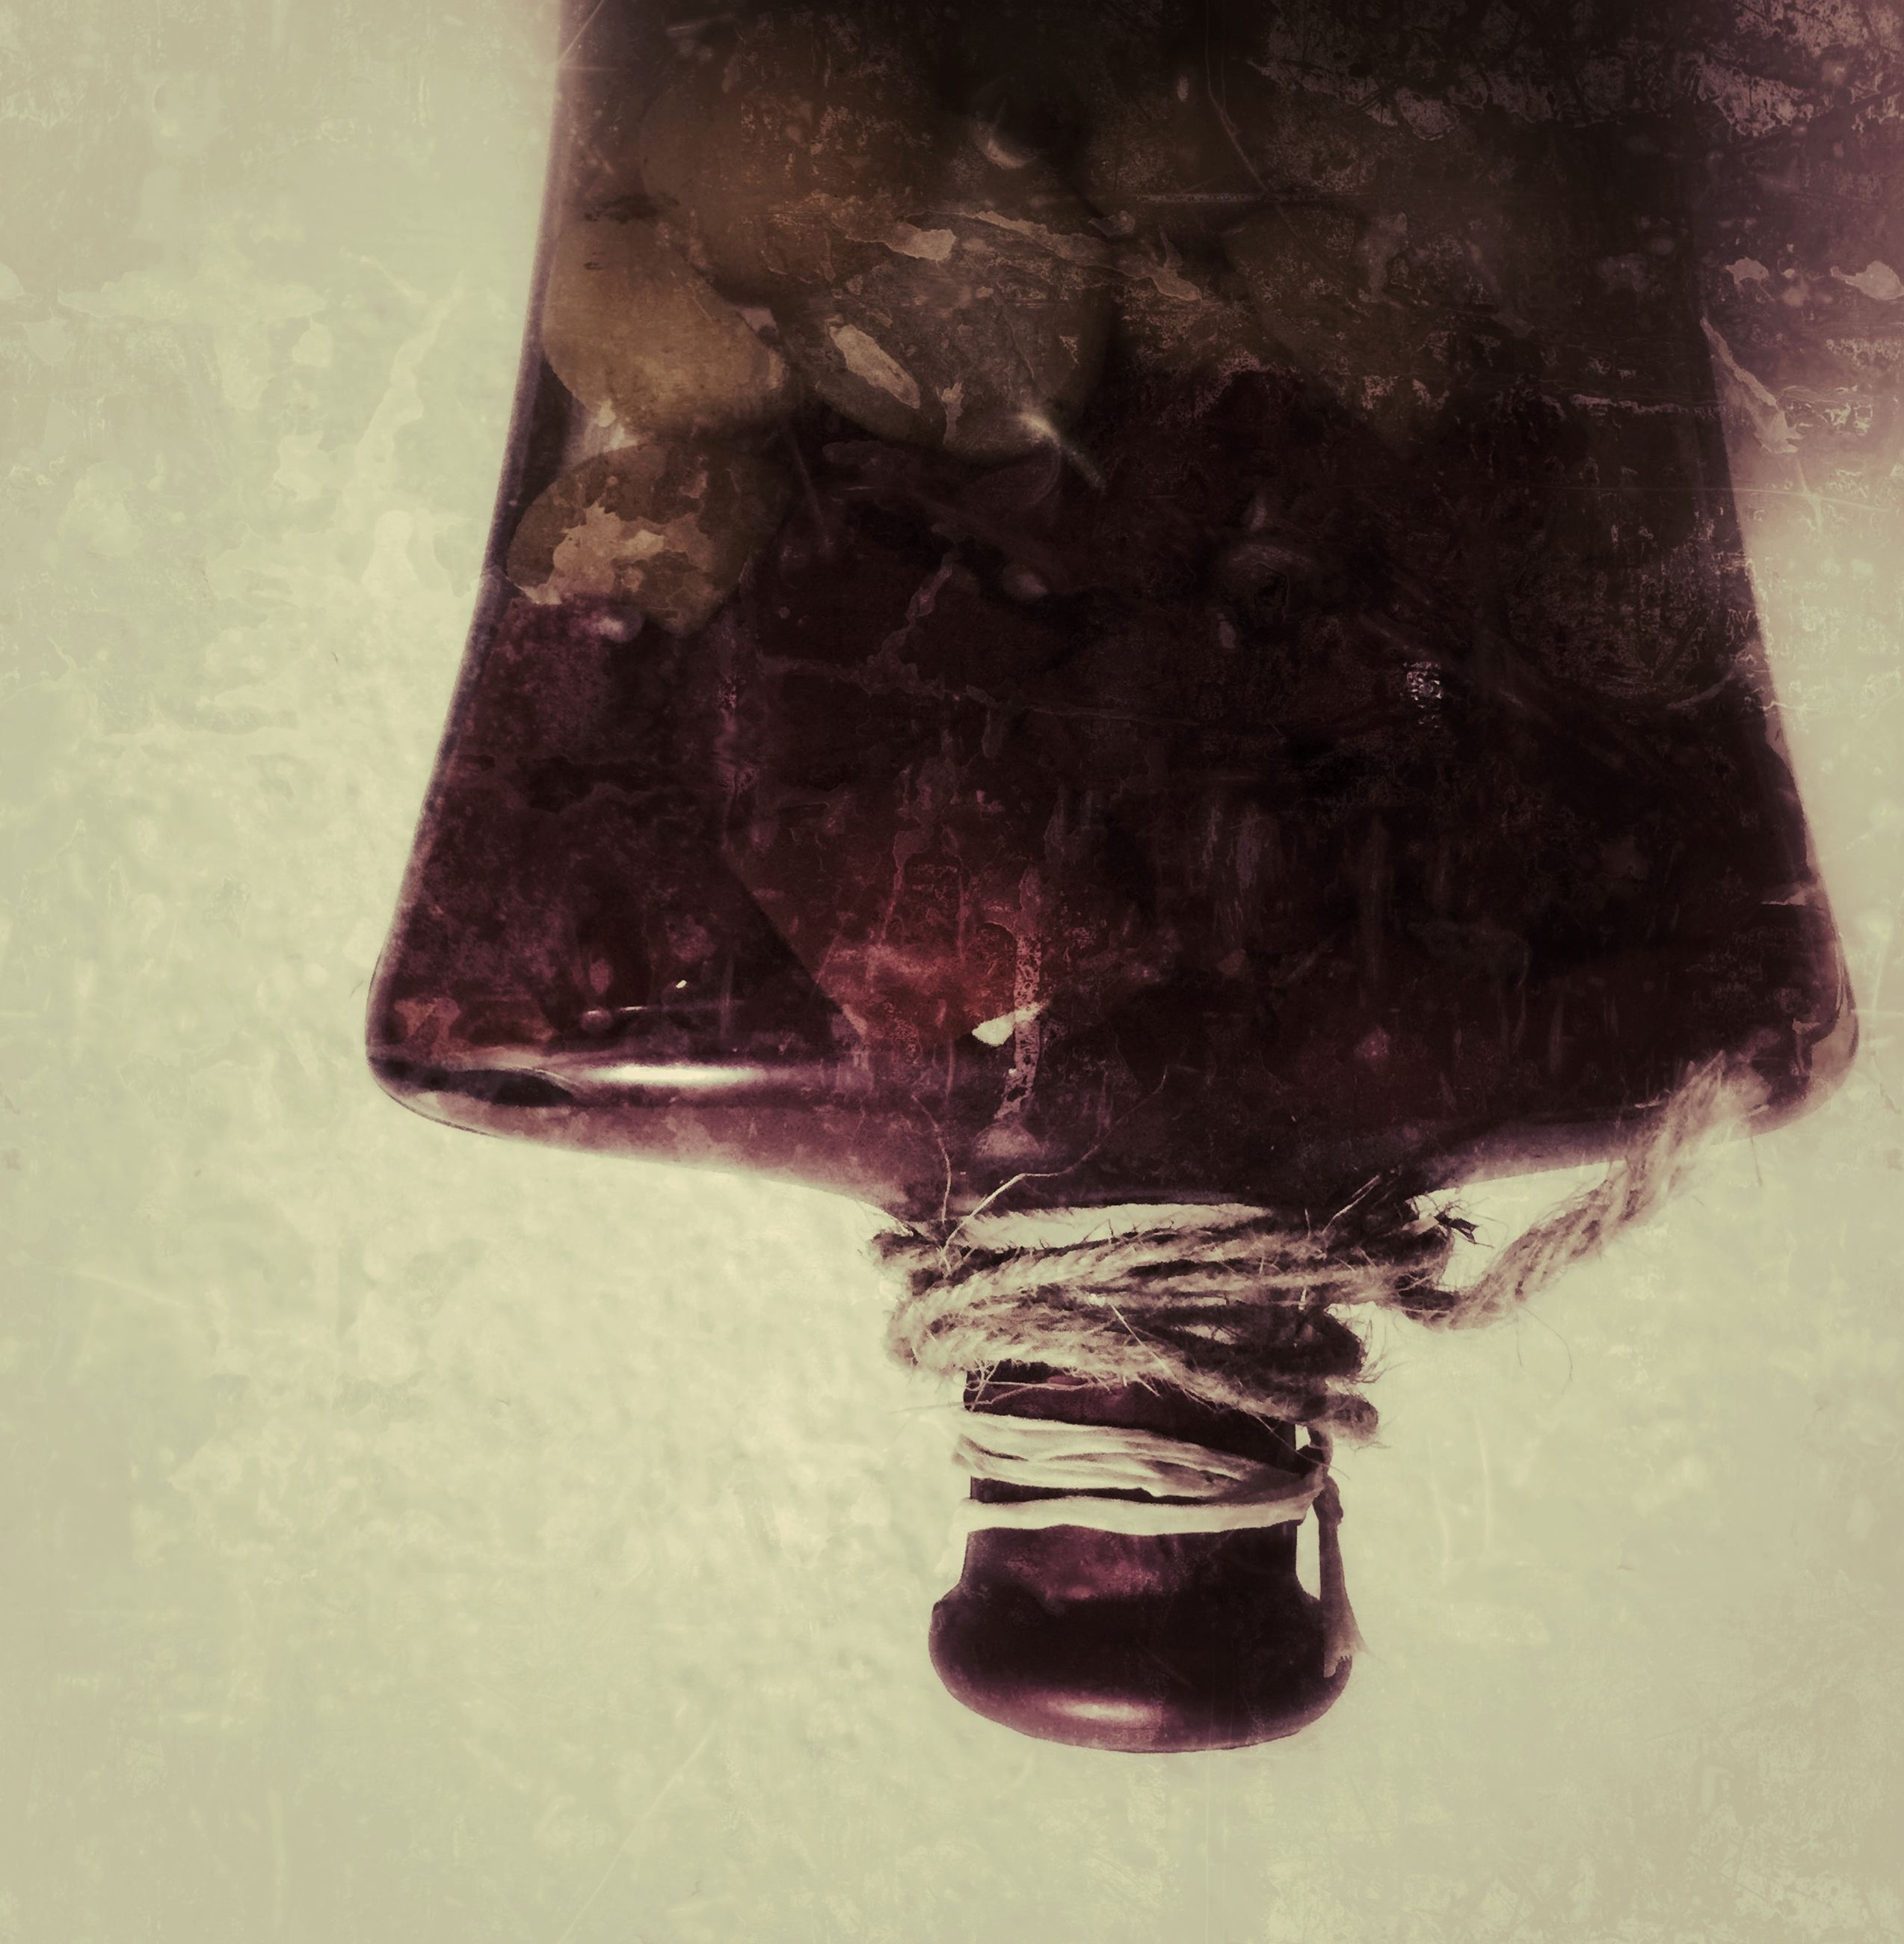 indoors, close-up, still life, high angle view, no people, table, wall - building feature, reflection, death, dead animal, water, day, hanging, cold temperature, nature, animal themes, glass - material, animal representation, art and craft